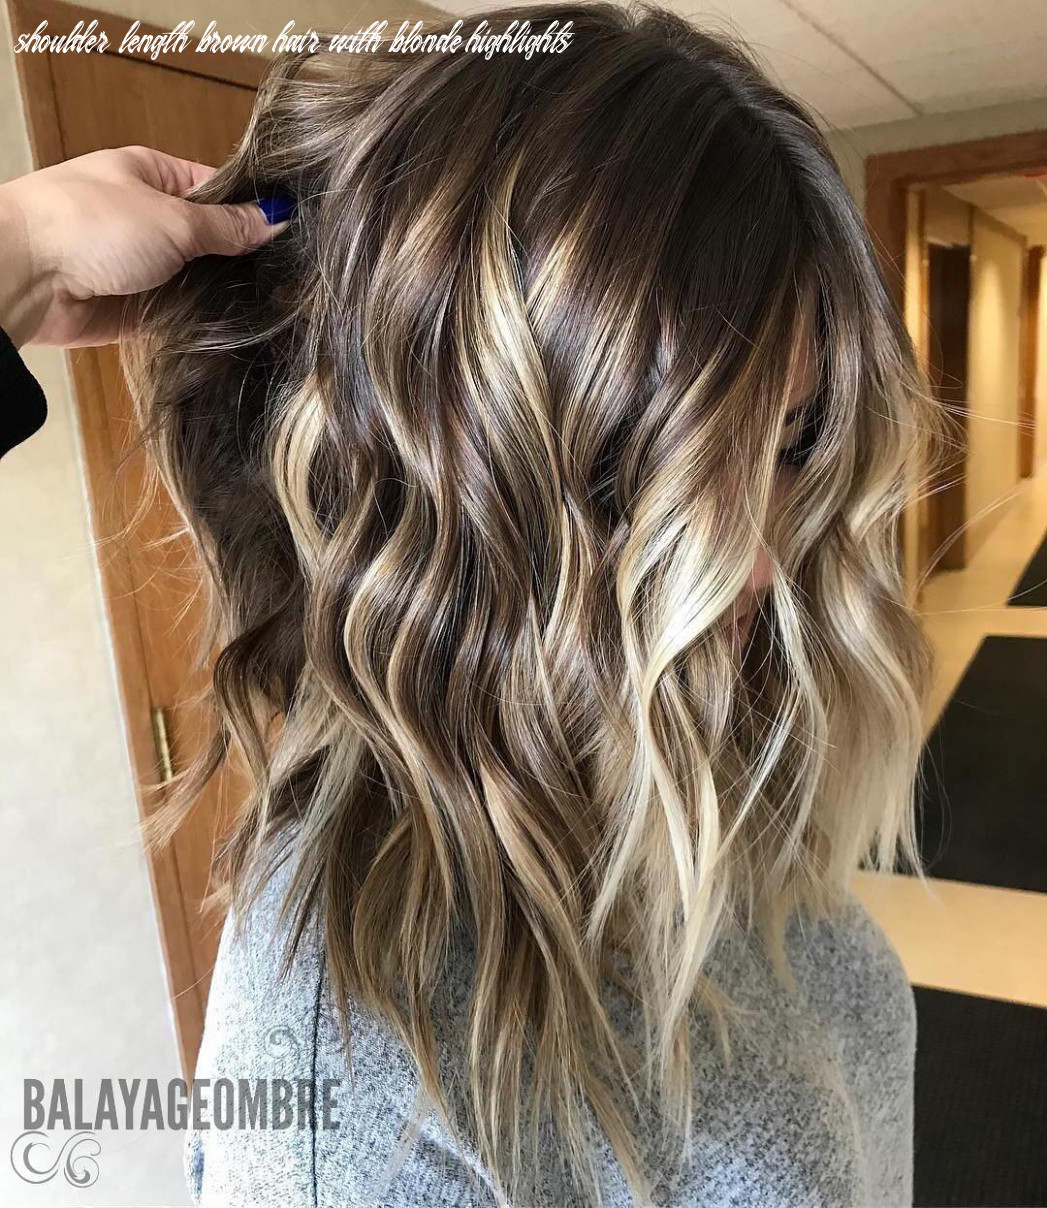 10 trendy brown balayage hairstyles for medium length hair 10 shoulder length brown hair with blonde highlights